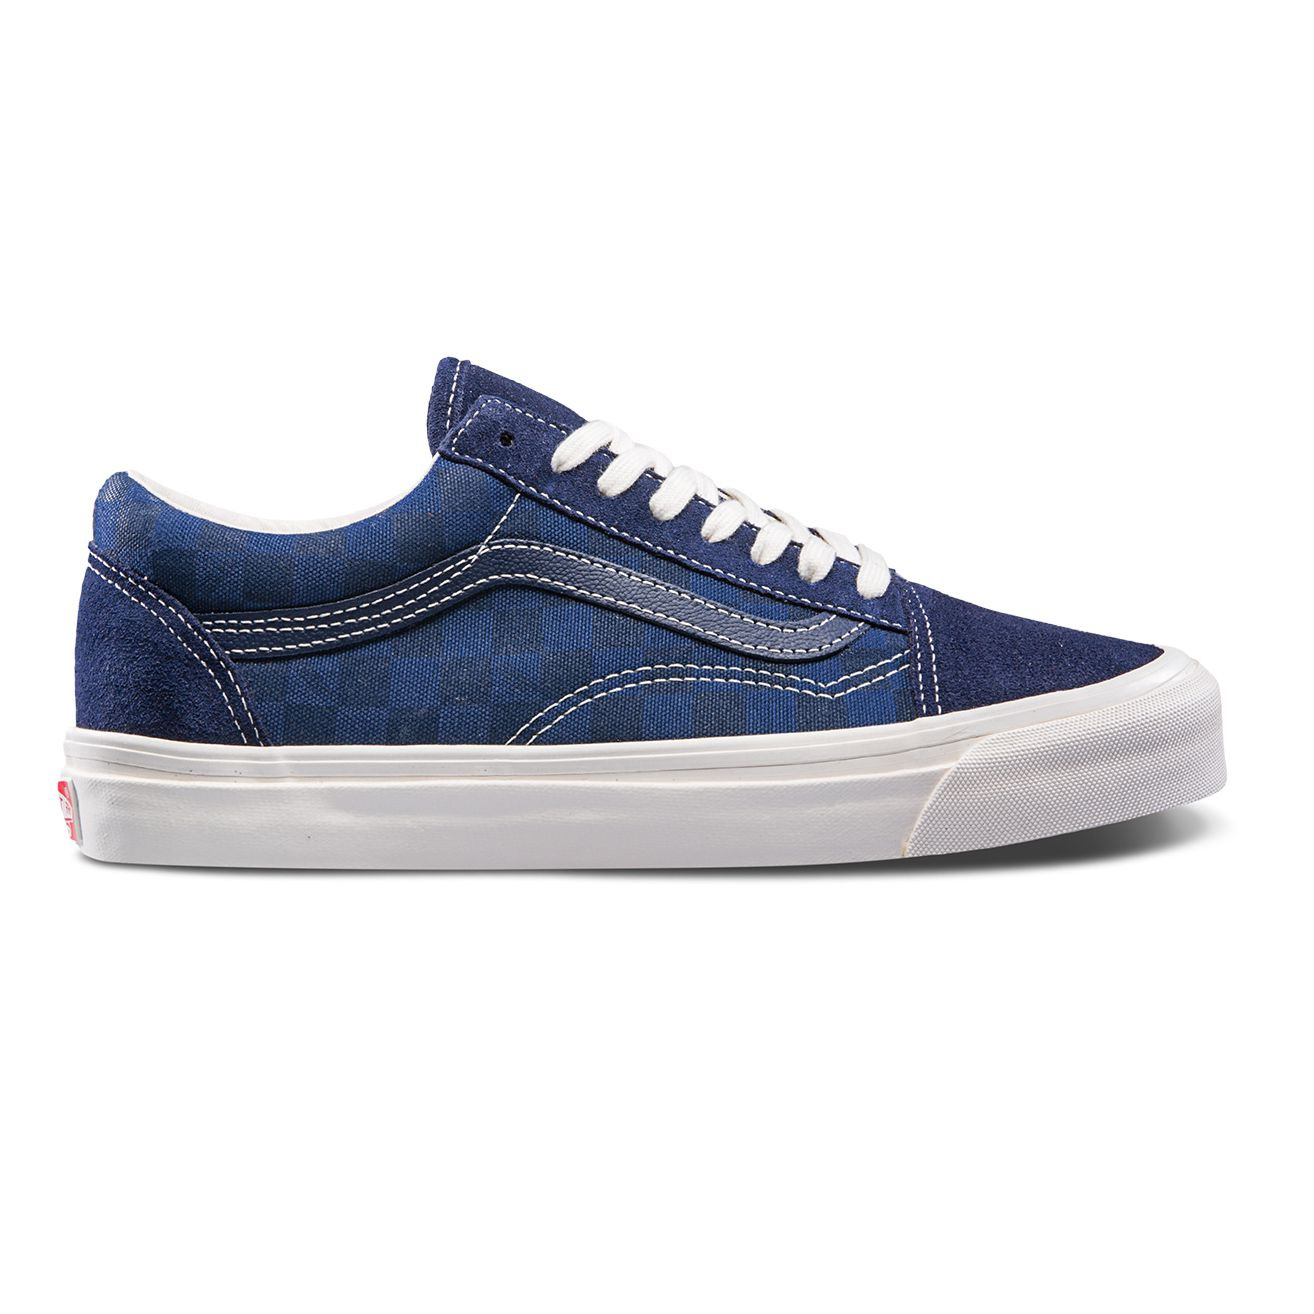 VANS OG OLD SKOOL LX (SUEDE/CANVAS) CHECKERBOARD/MAJOLICA VN0A36C8U9W